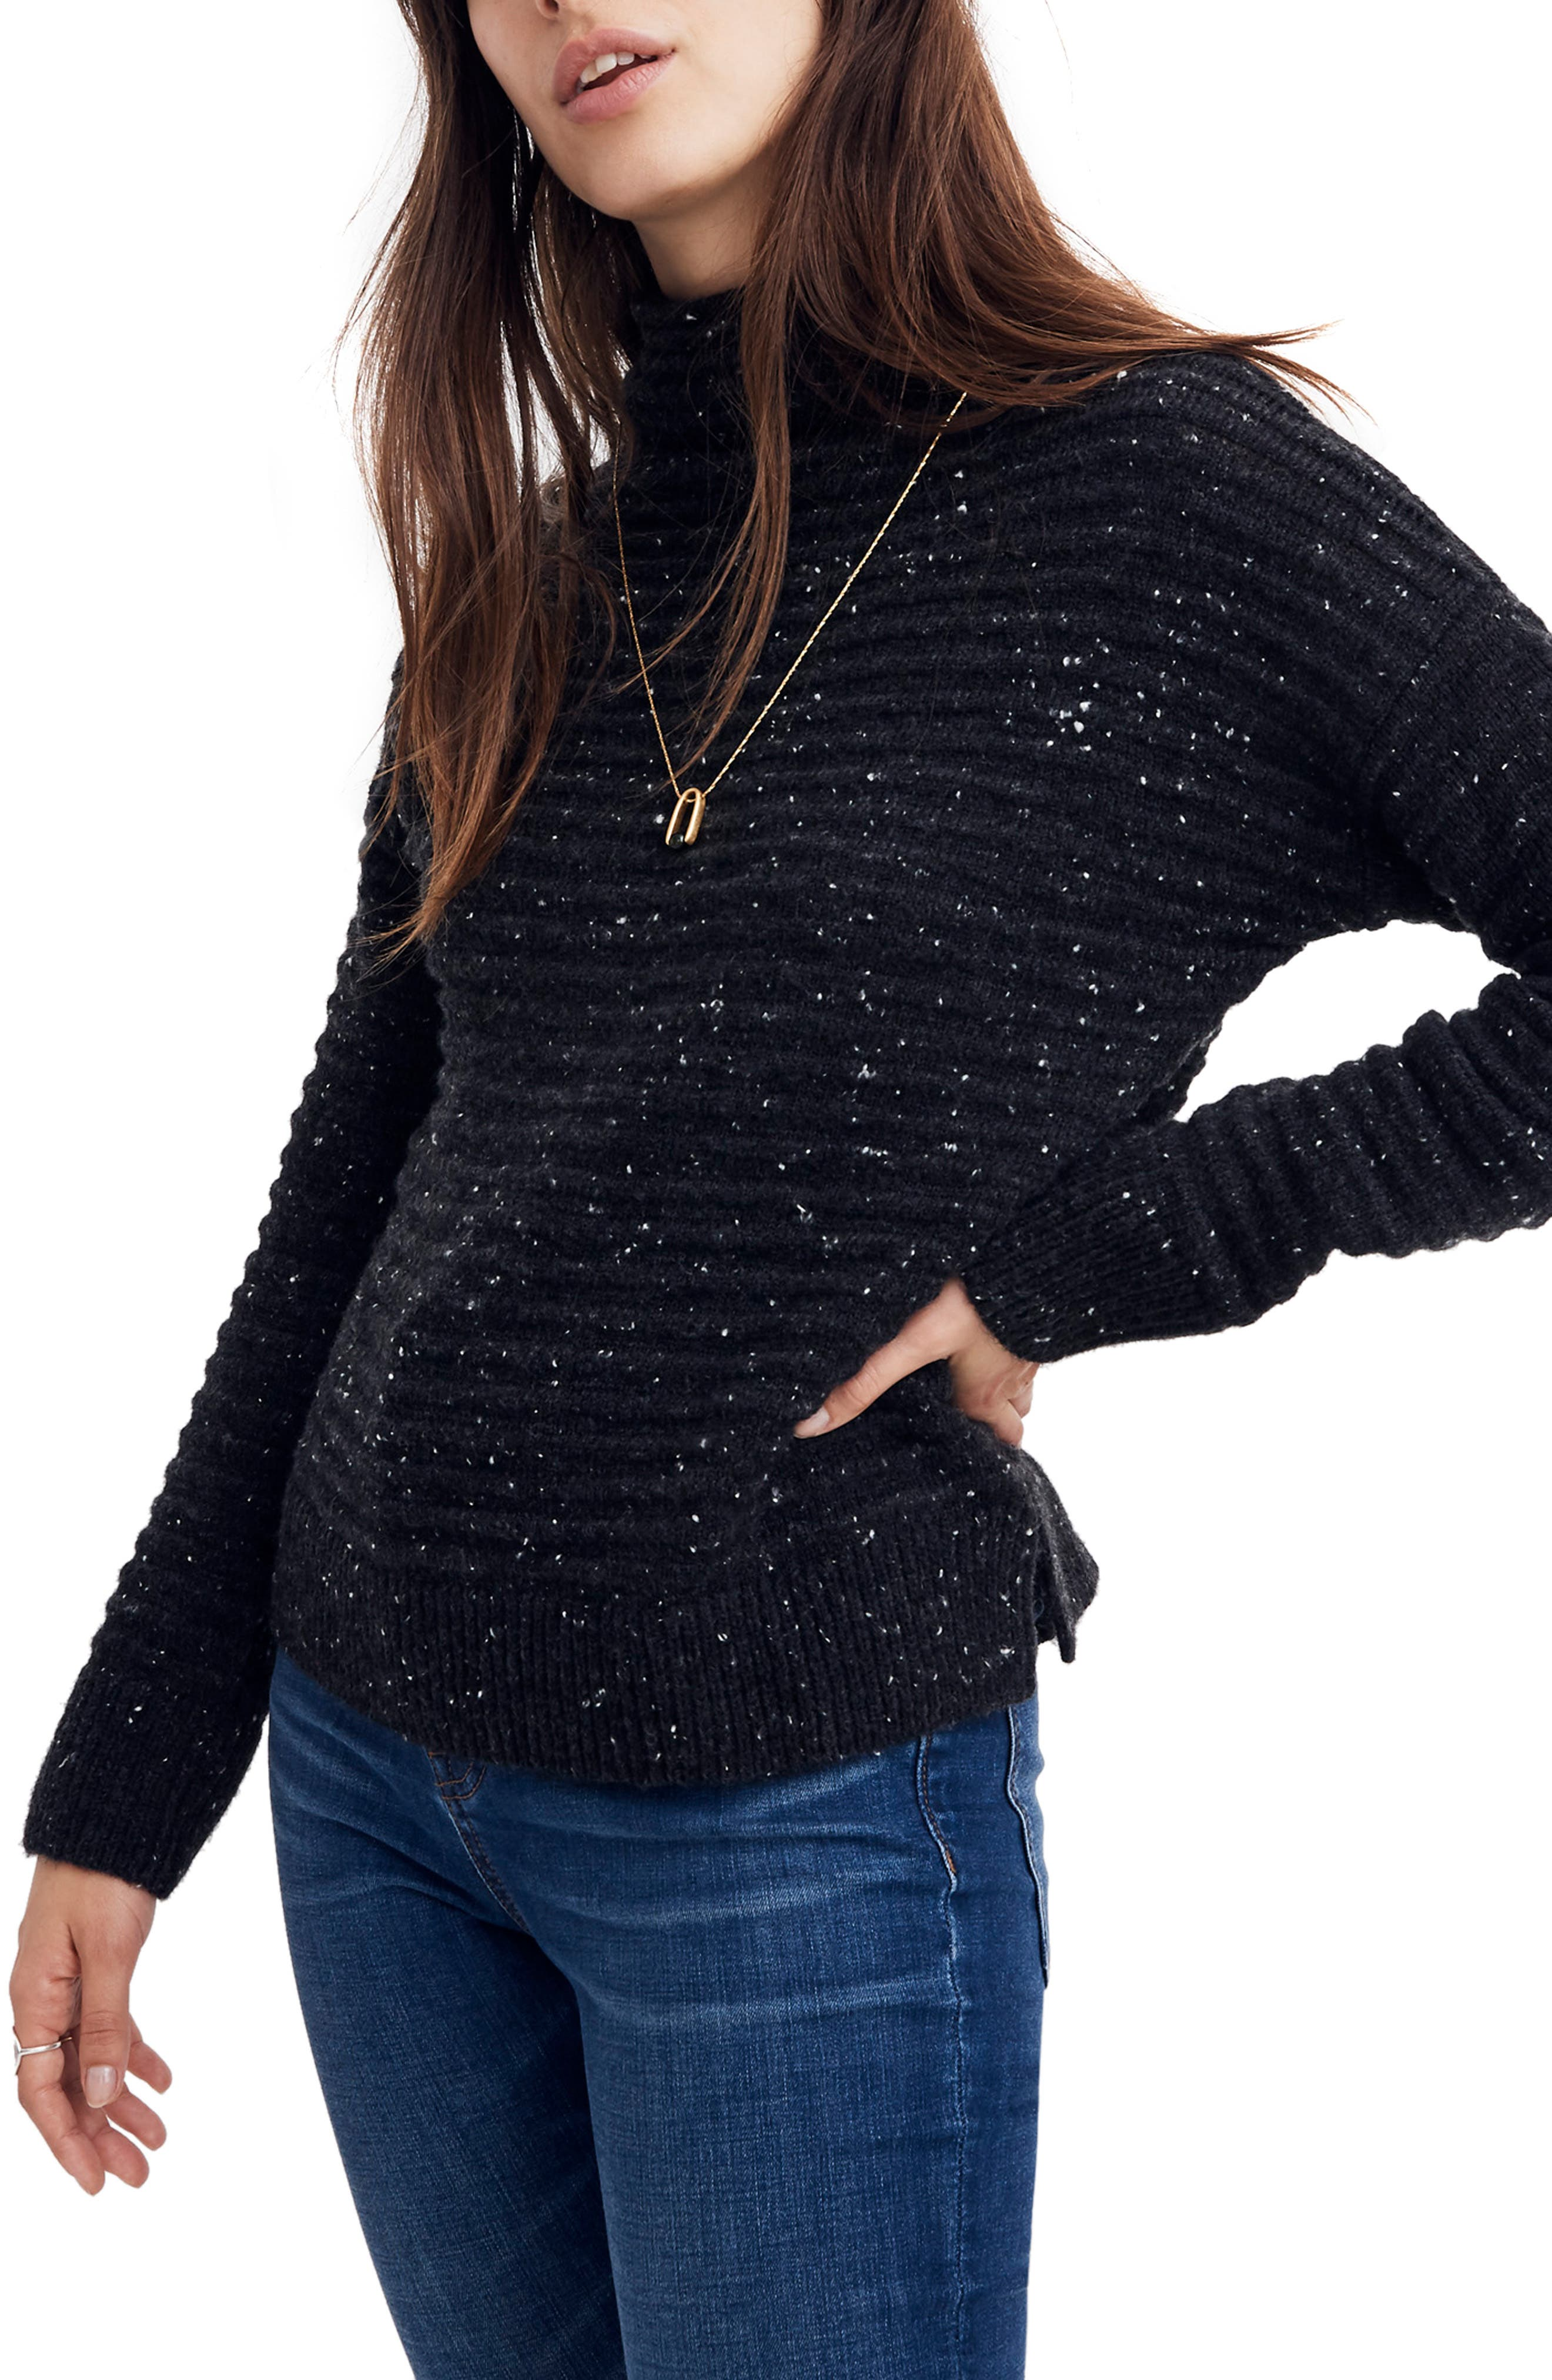 Belmont Donegal Mock Neck Sweater,                             Main thumbnail 1, color,                             DONEGAL STORM